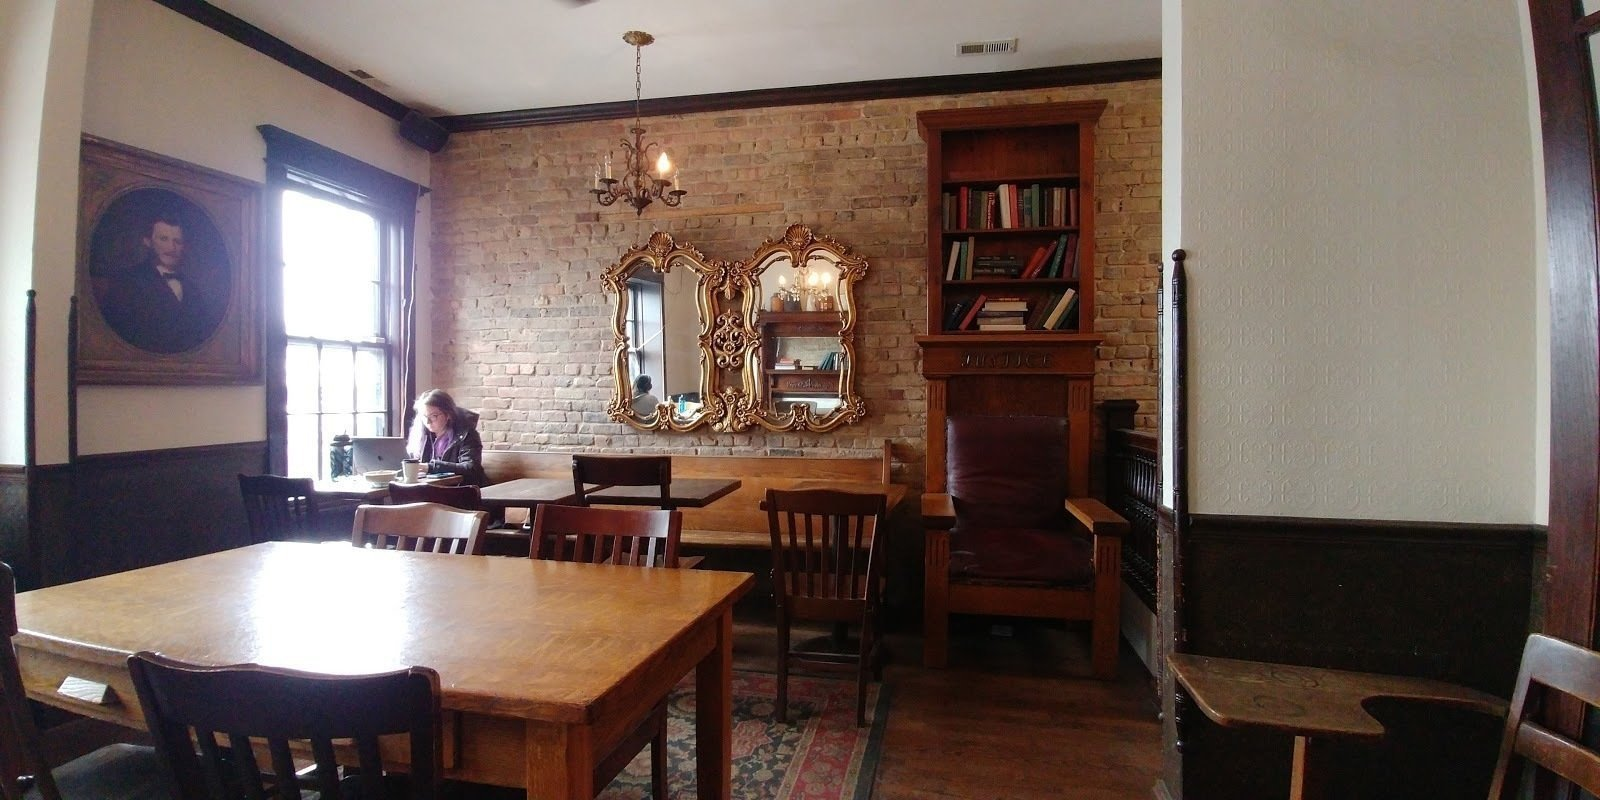 Bourgeois Pig Cafe: A Work-Friendly Place in Chicago